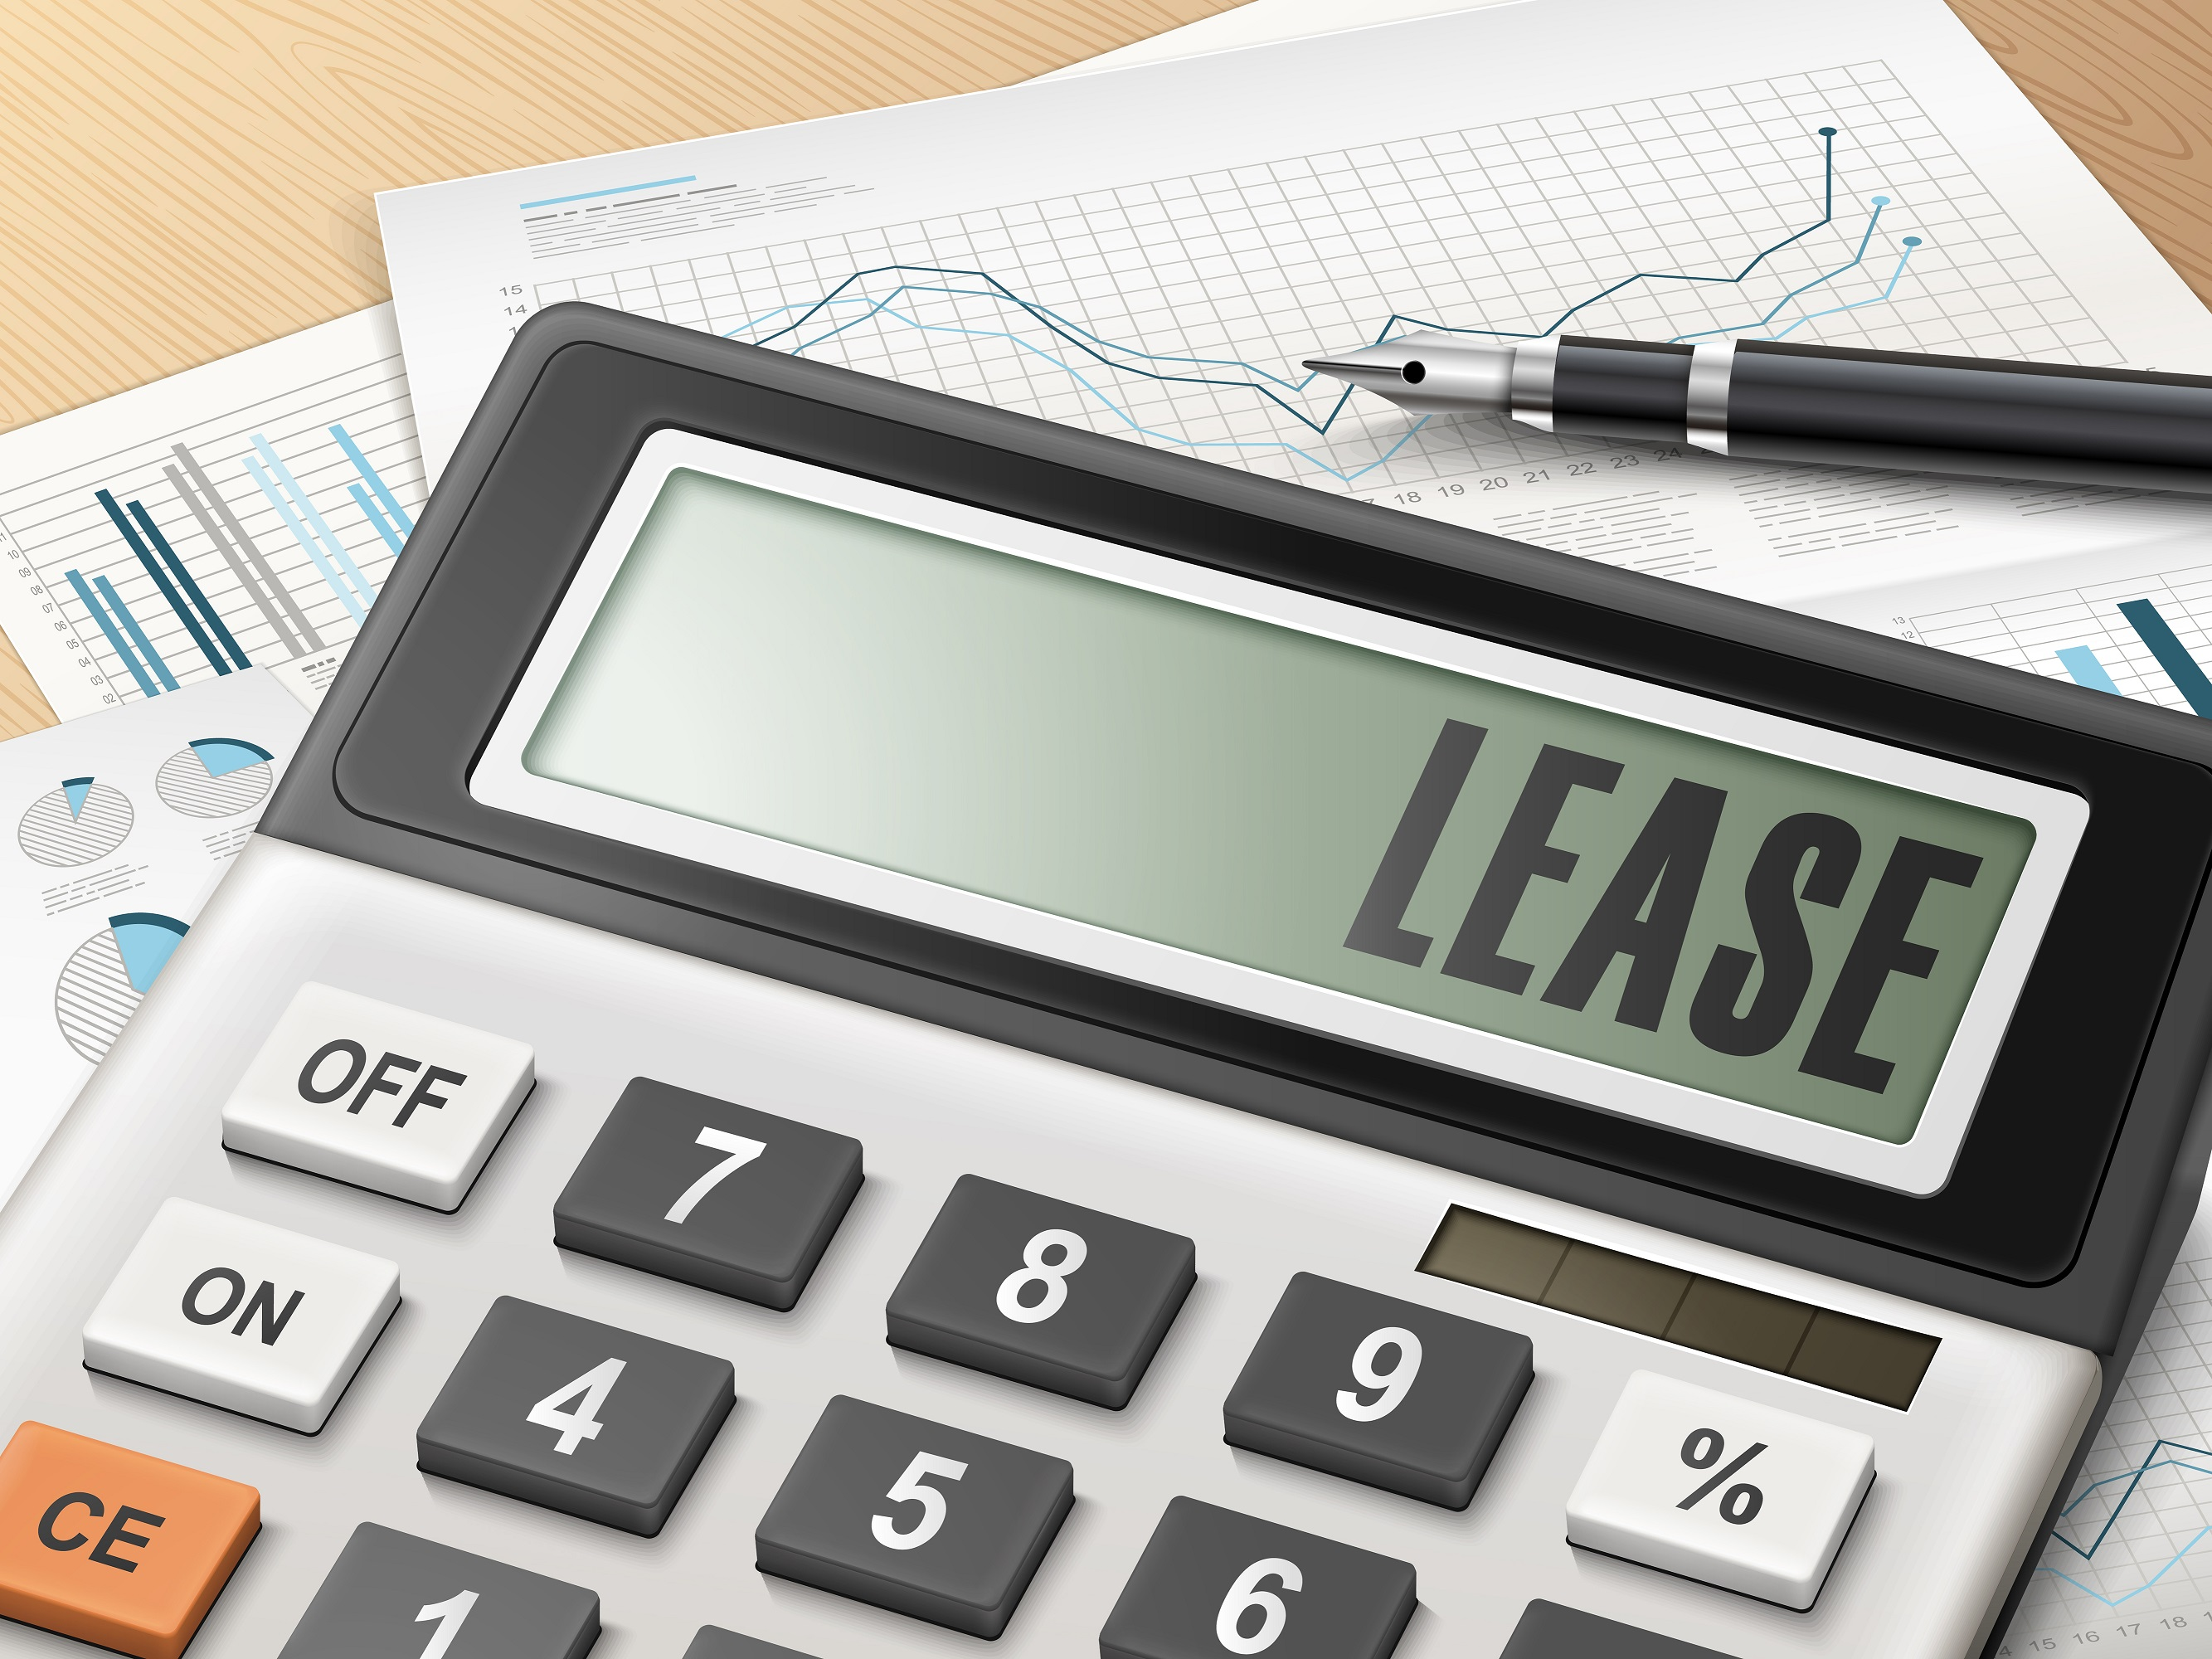 How to finance your business telephone equipment through leasing - by TeleDynamics